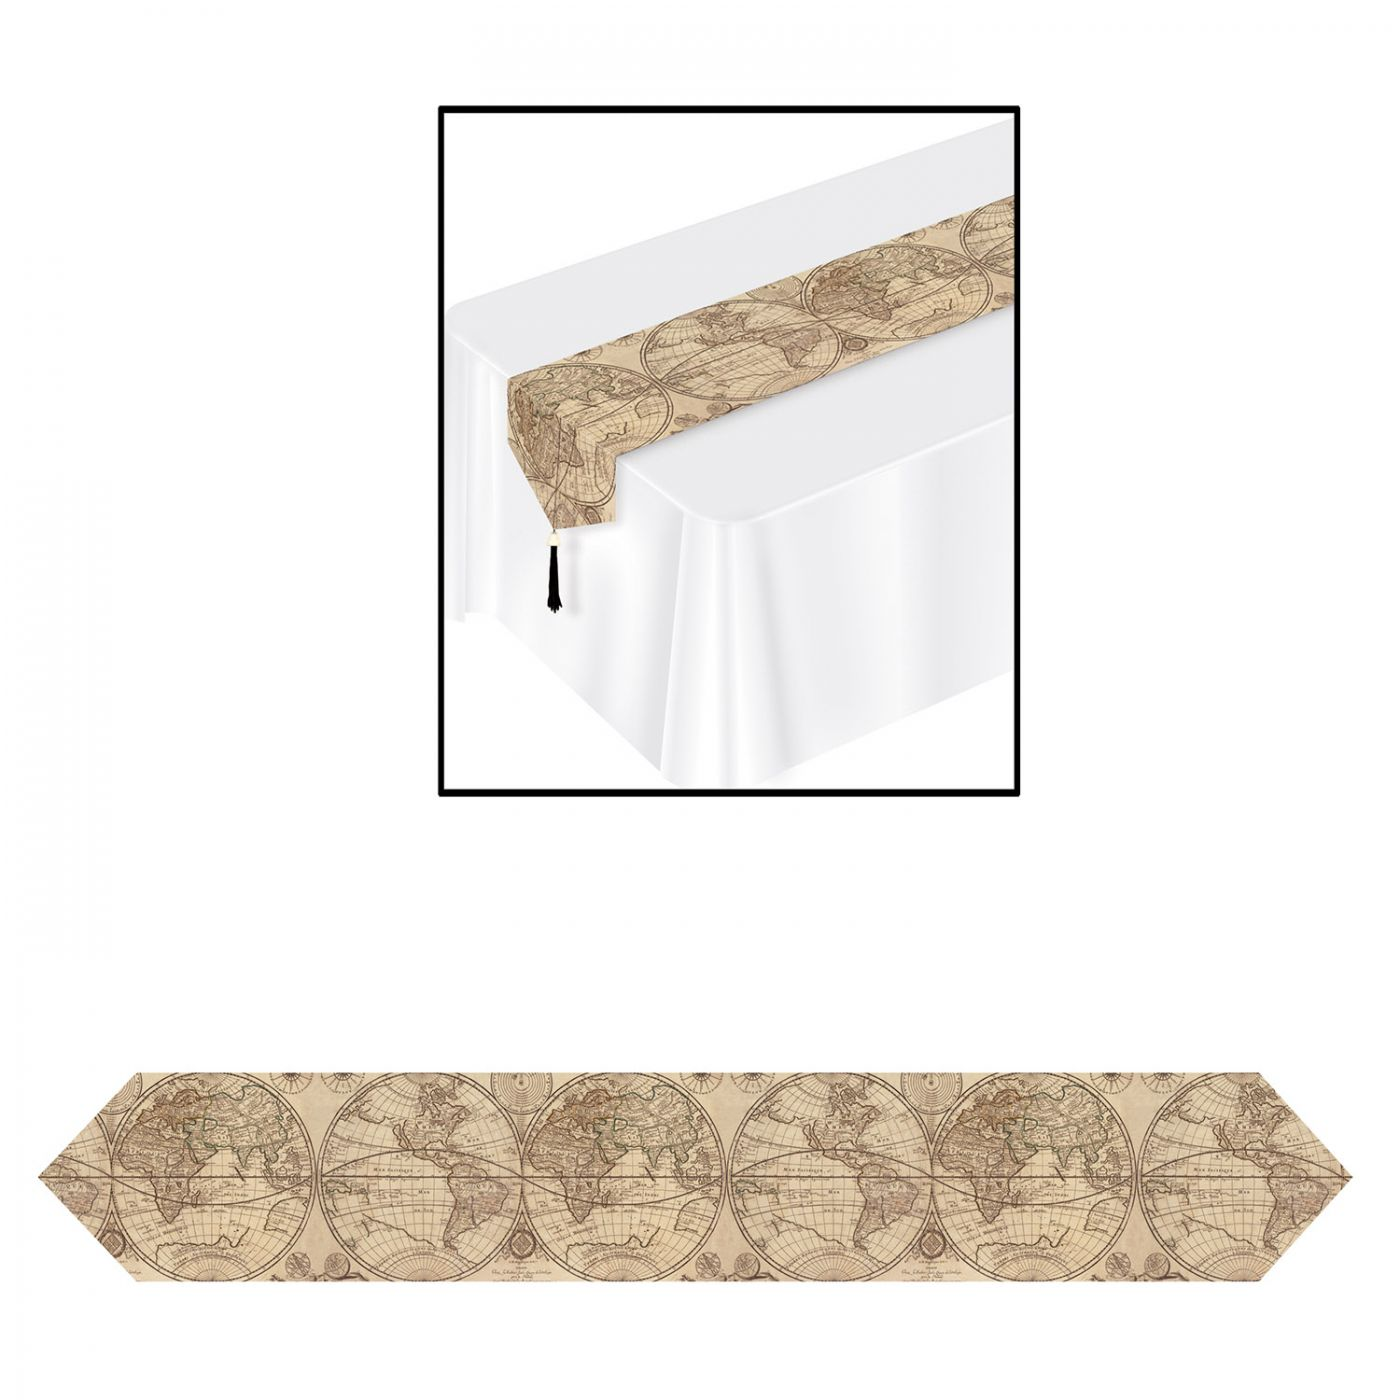 Printed Around The World Table Runner image